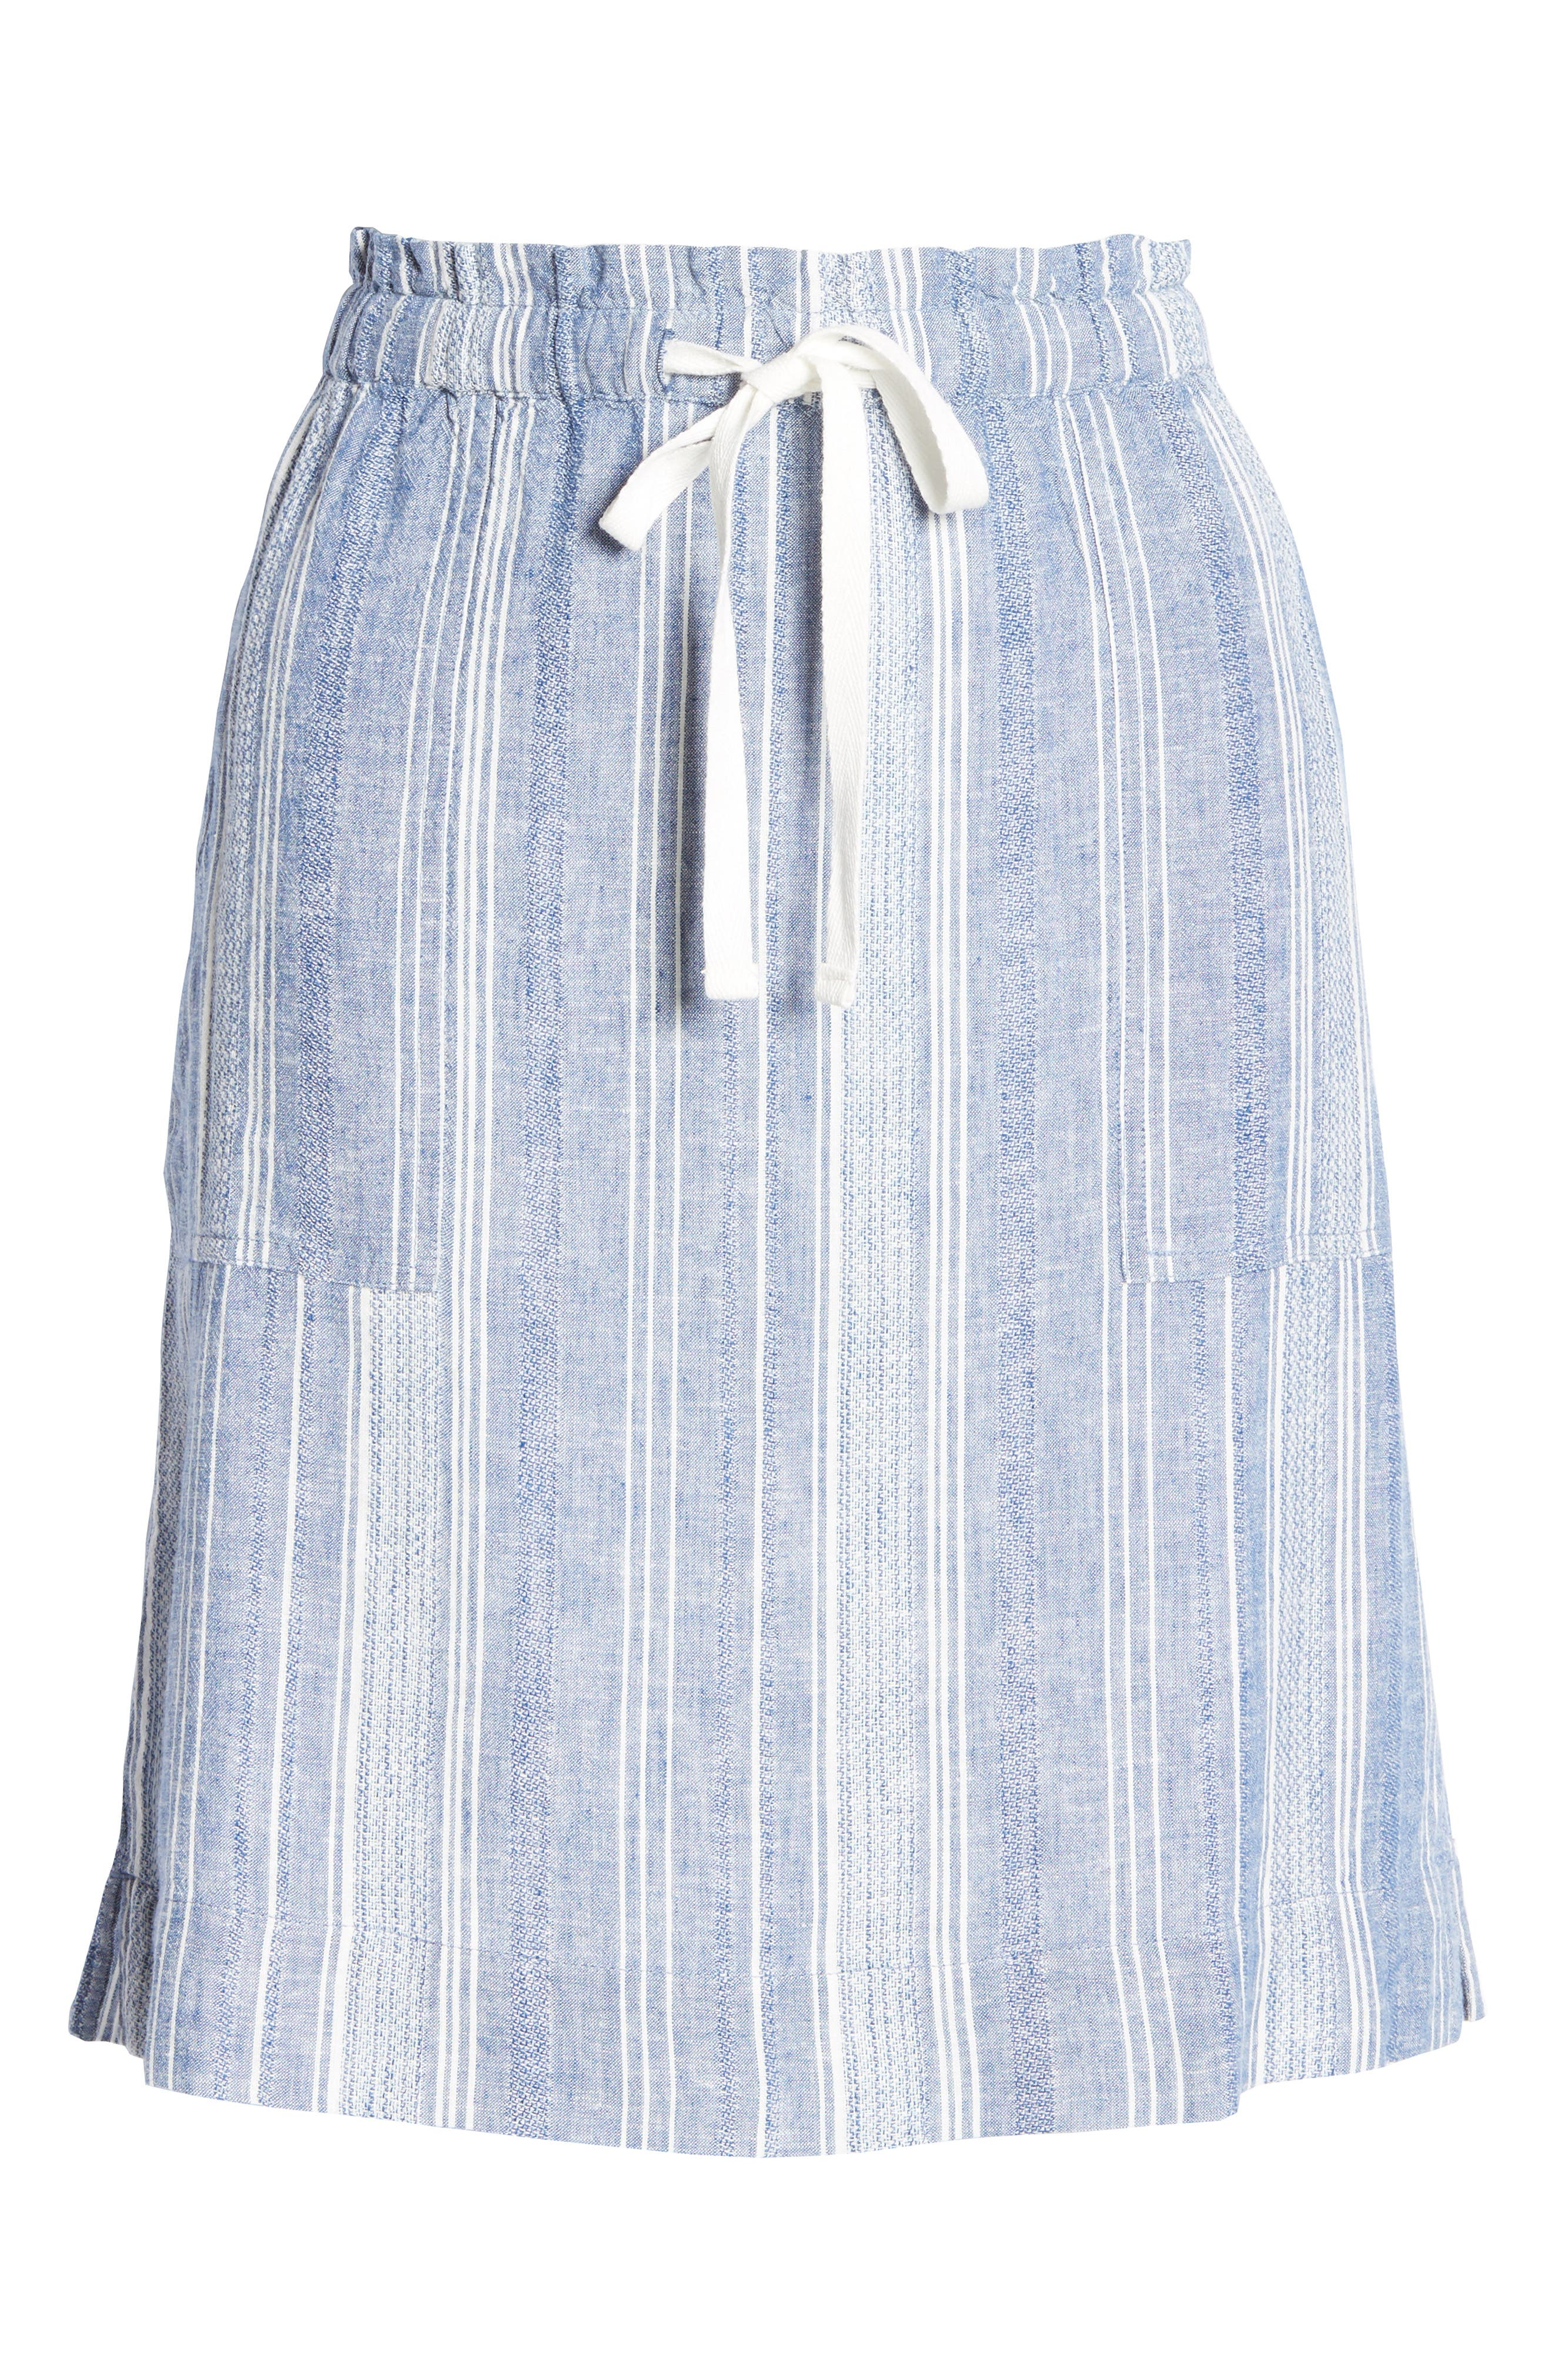 Summery skirt style is all sorted out with this linen-blend version, set with textured stripes and done in a breezy pull-on silhouette. Style Name: Caslon Textured Stripe Linen Blend Drawstring Skirt. Style Number: 5979051. Available in stores.